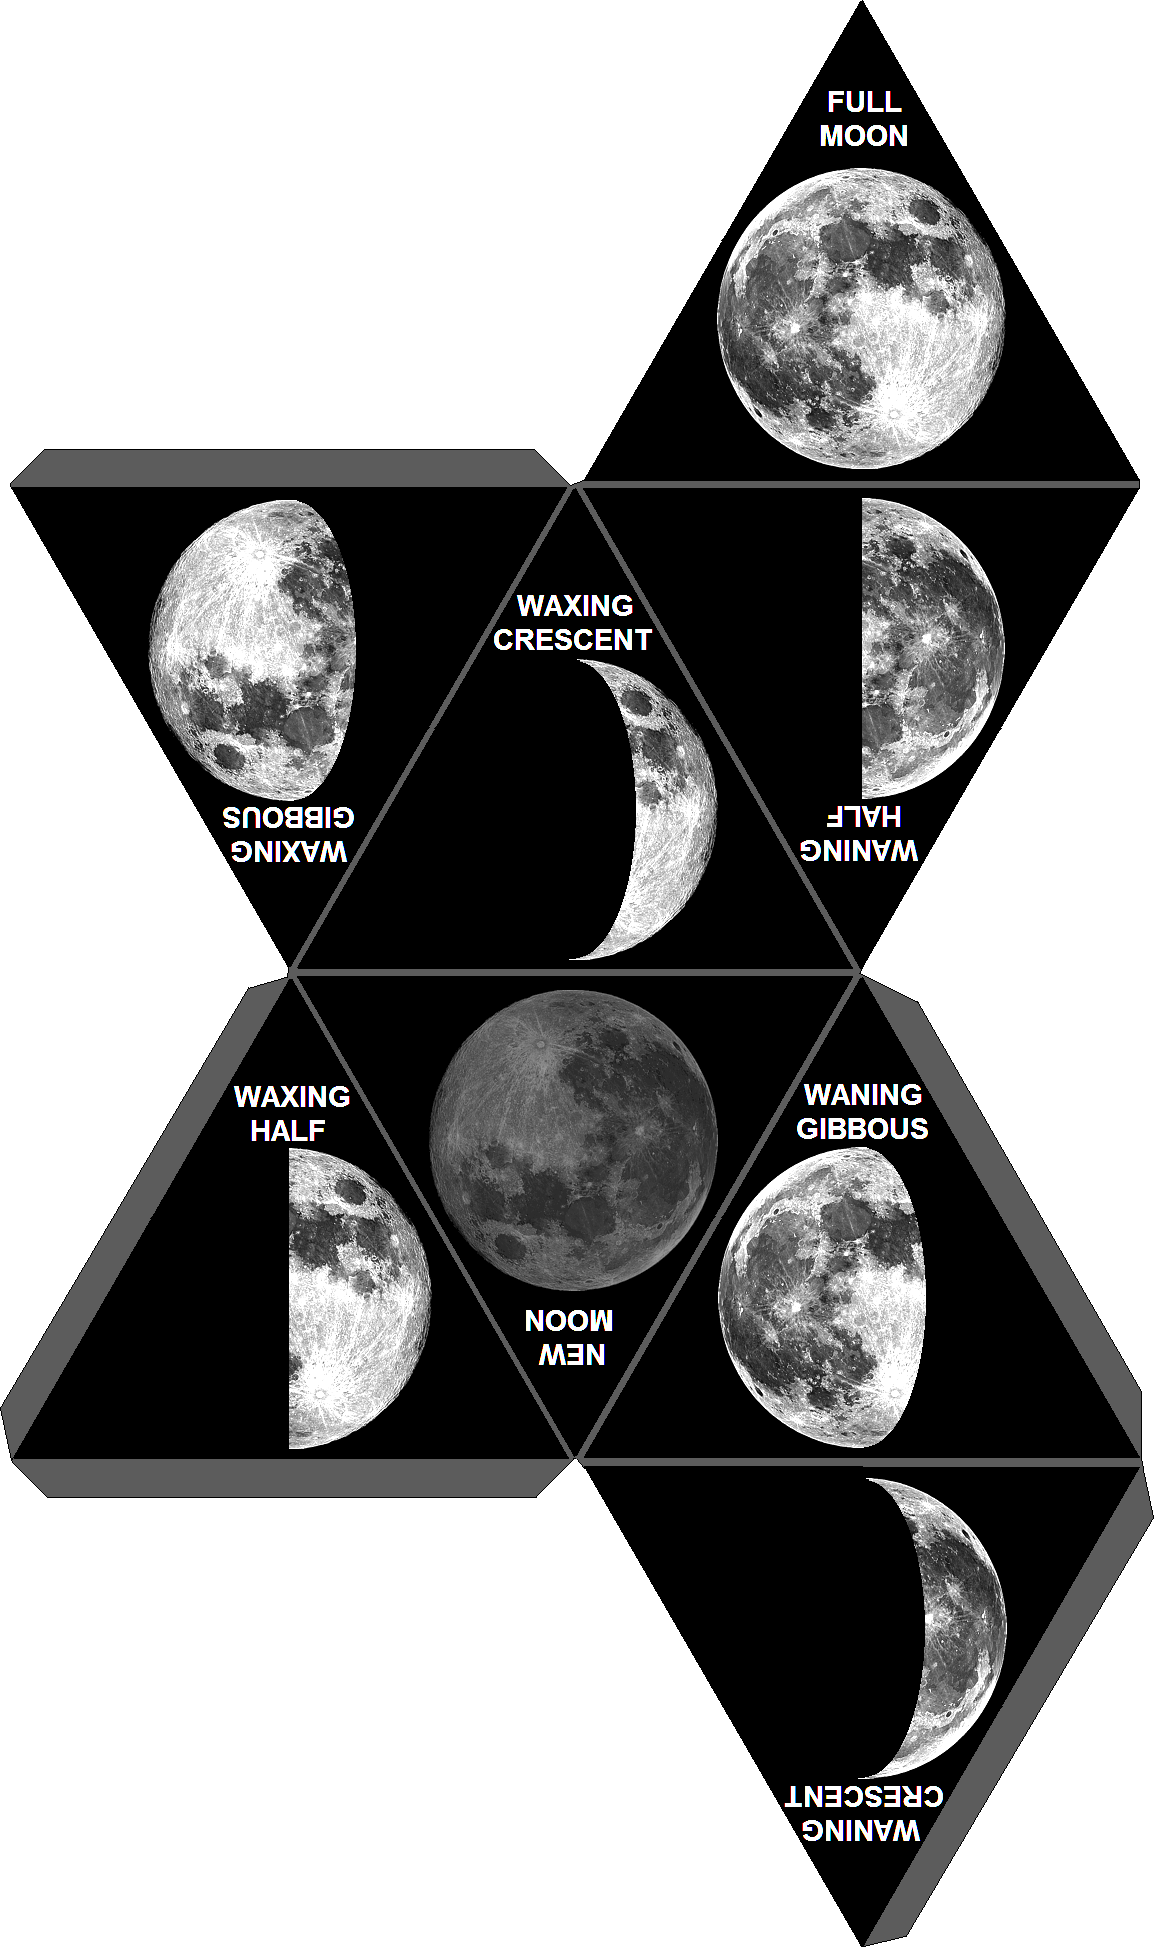 essay on the moon phases The phase when the moon passes between the earth and sun is called the new moon the next phase of the moon is called the waxing crescent.